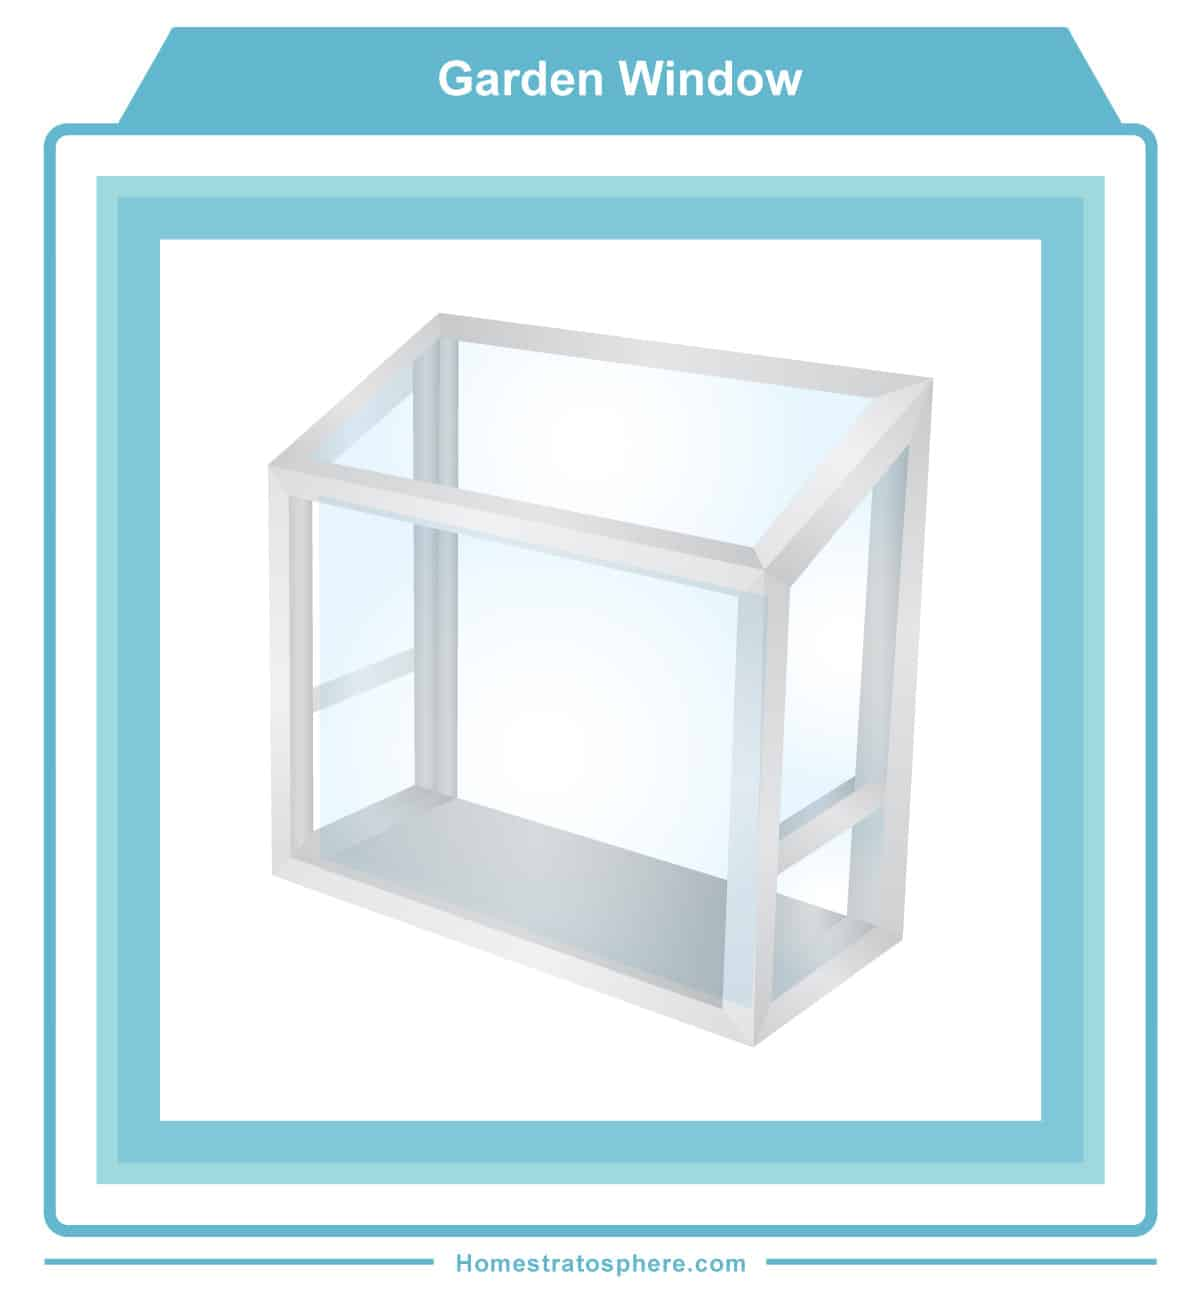 Garden style window for growing herbs and plants indoors (diagram)